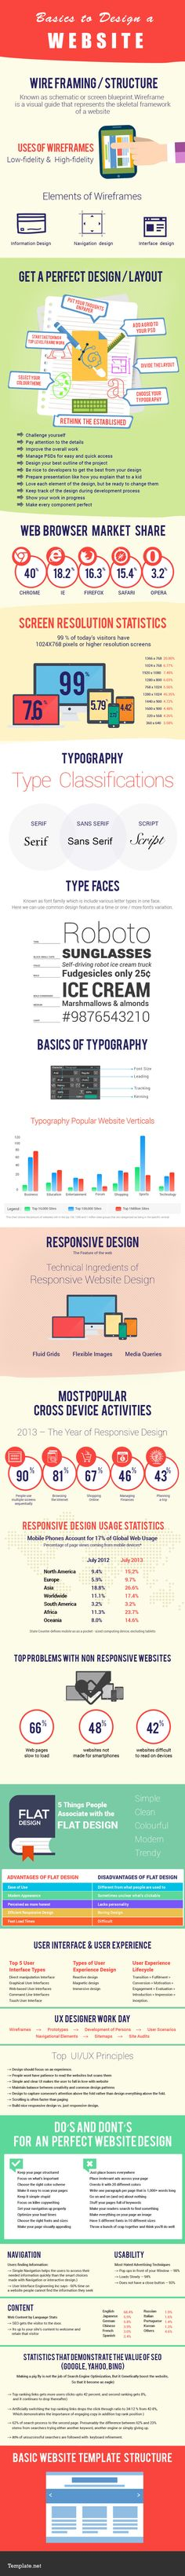 Basics to design a Website #infographic http://fleetheratrace.blogspot.co.uk/2015/04/web-design-tips.html #webdesign #web #design tips and tricks